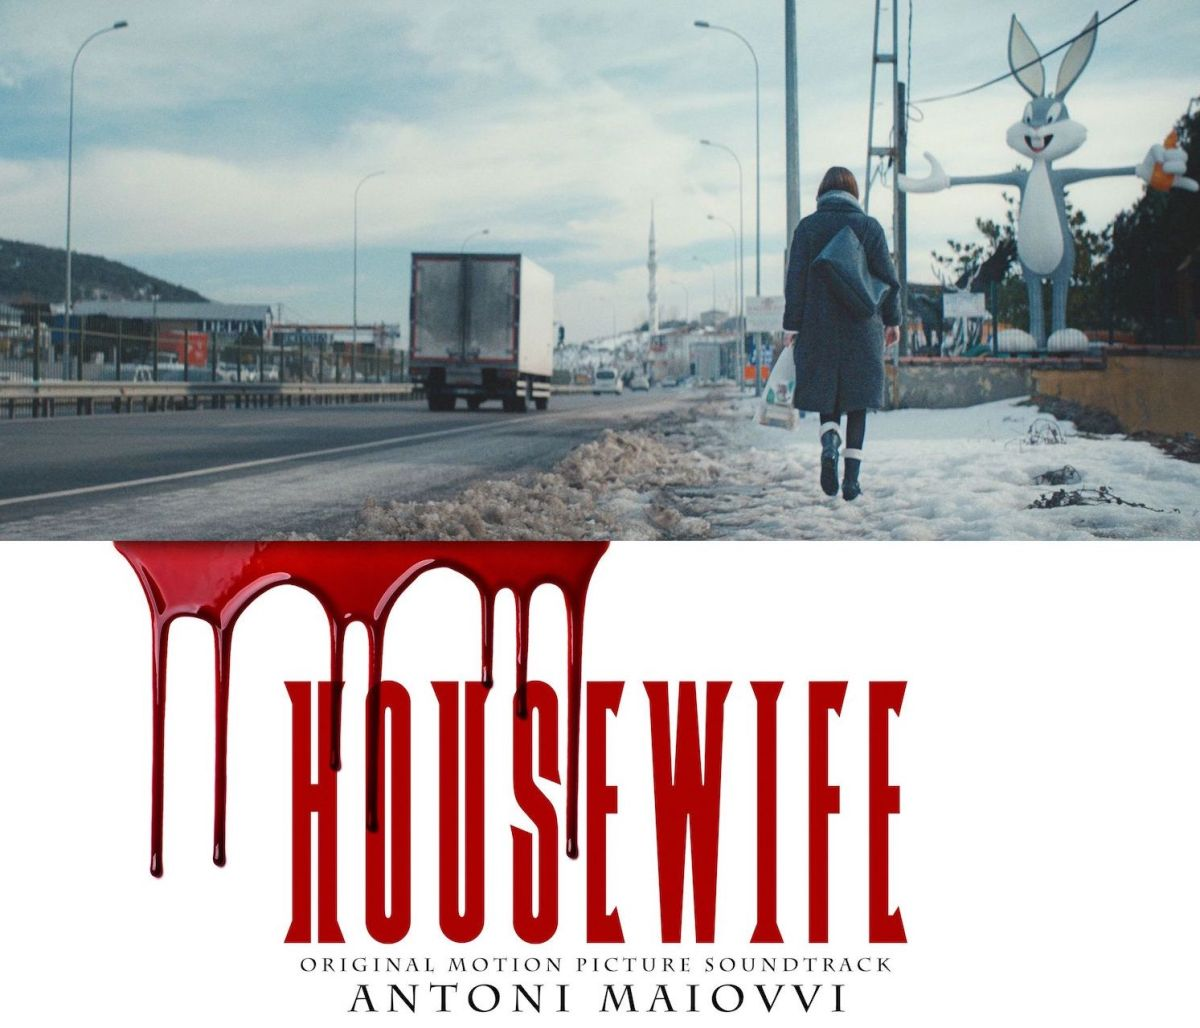 PREMIERE: Disco Theme from Antoni Maiovvi's 'Housewife' Score